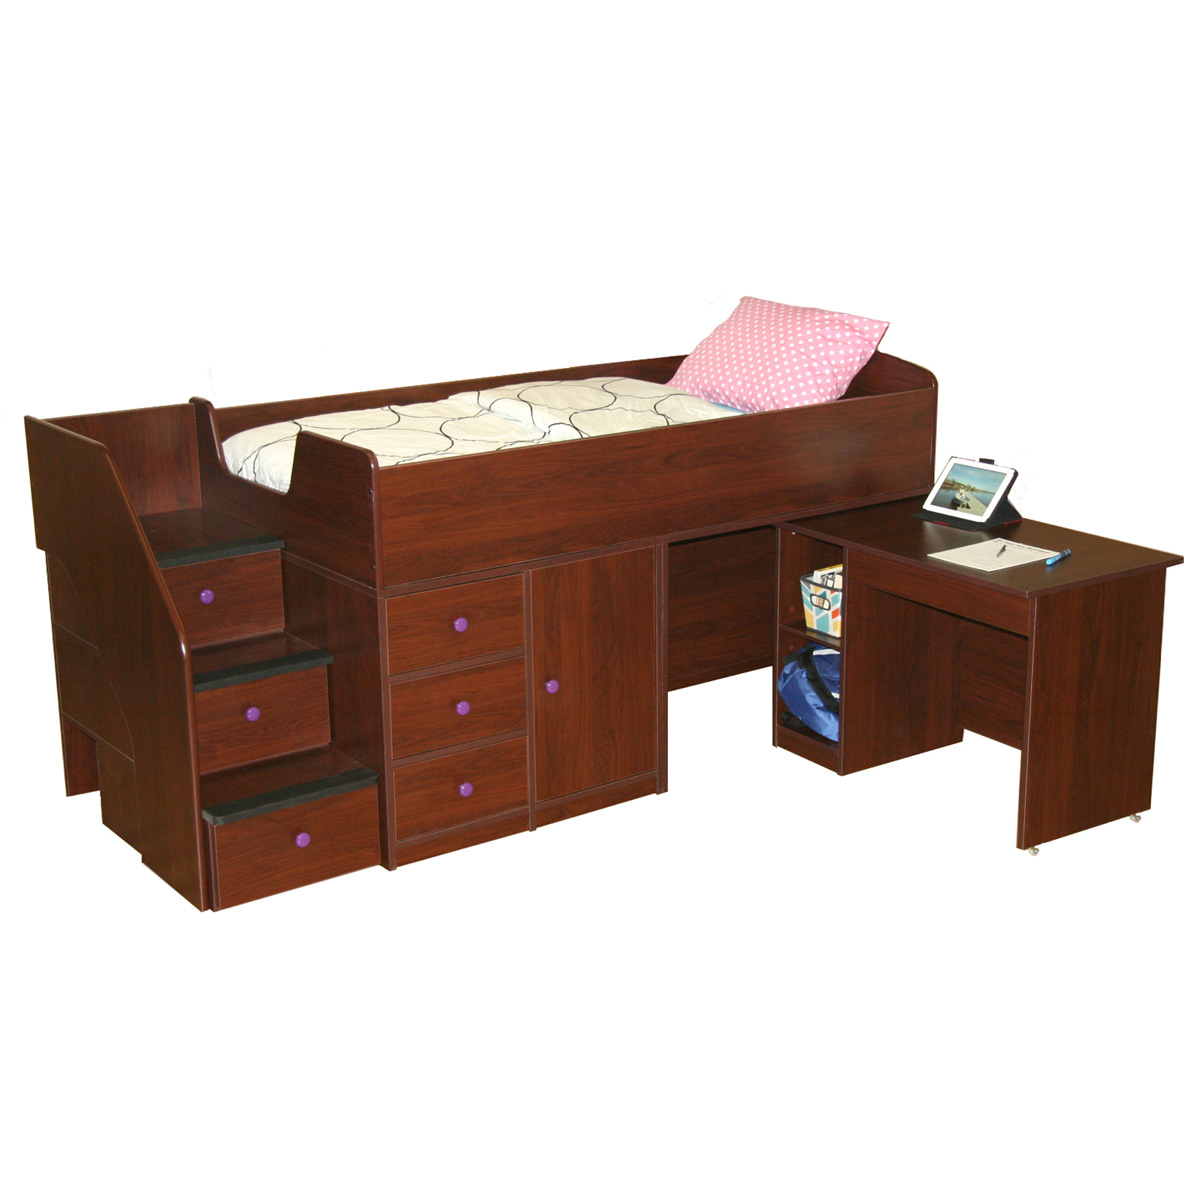 Berg Furniture Sierra Captainu0027s Twin Bed With Pull Out Desk U0026 Stairs FREE  SHIPPING